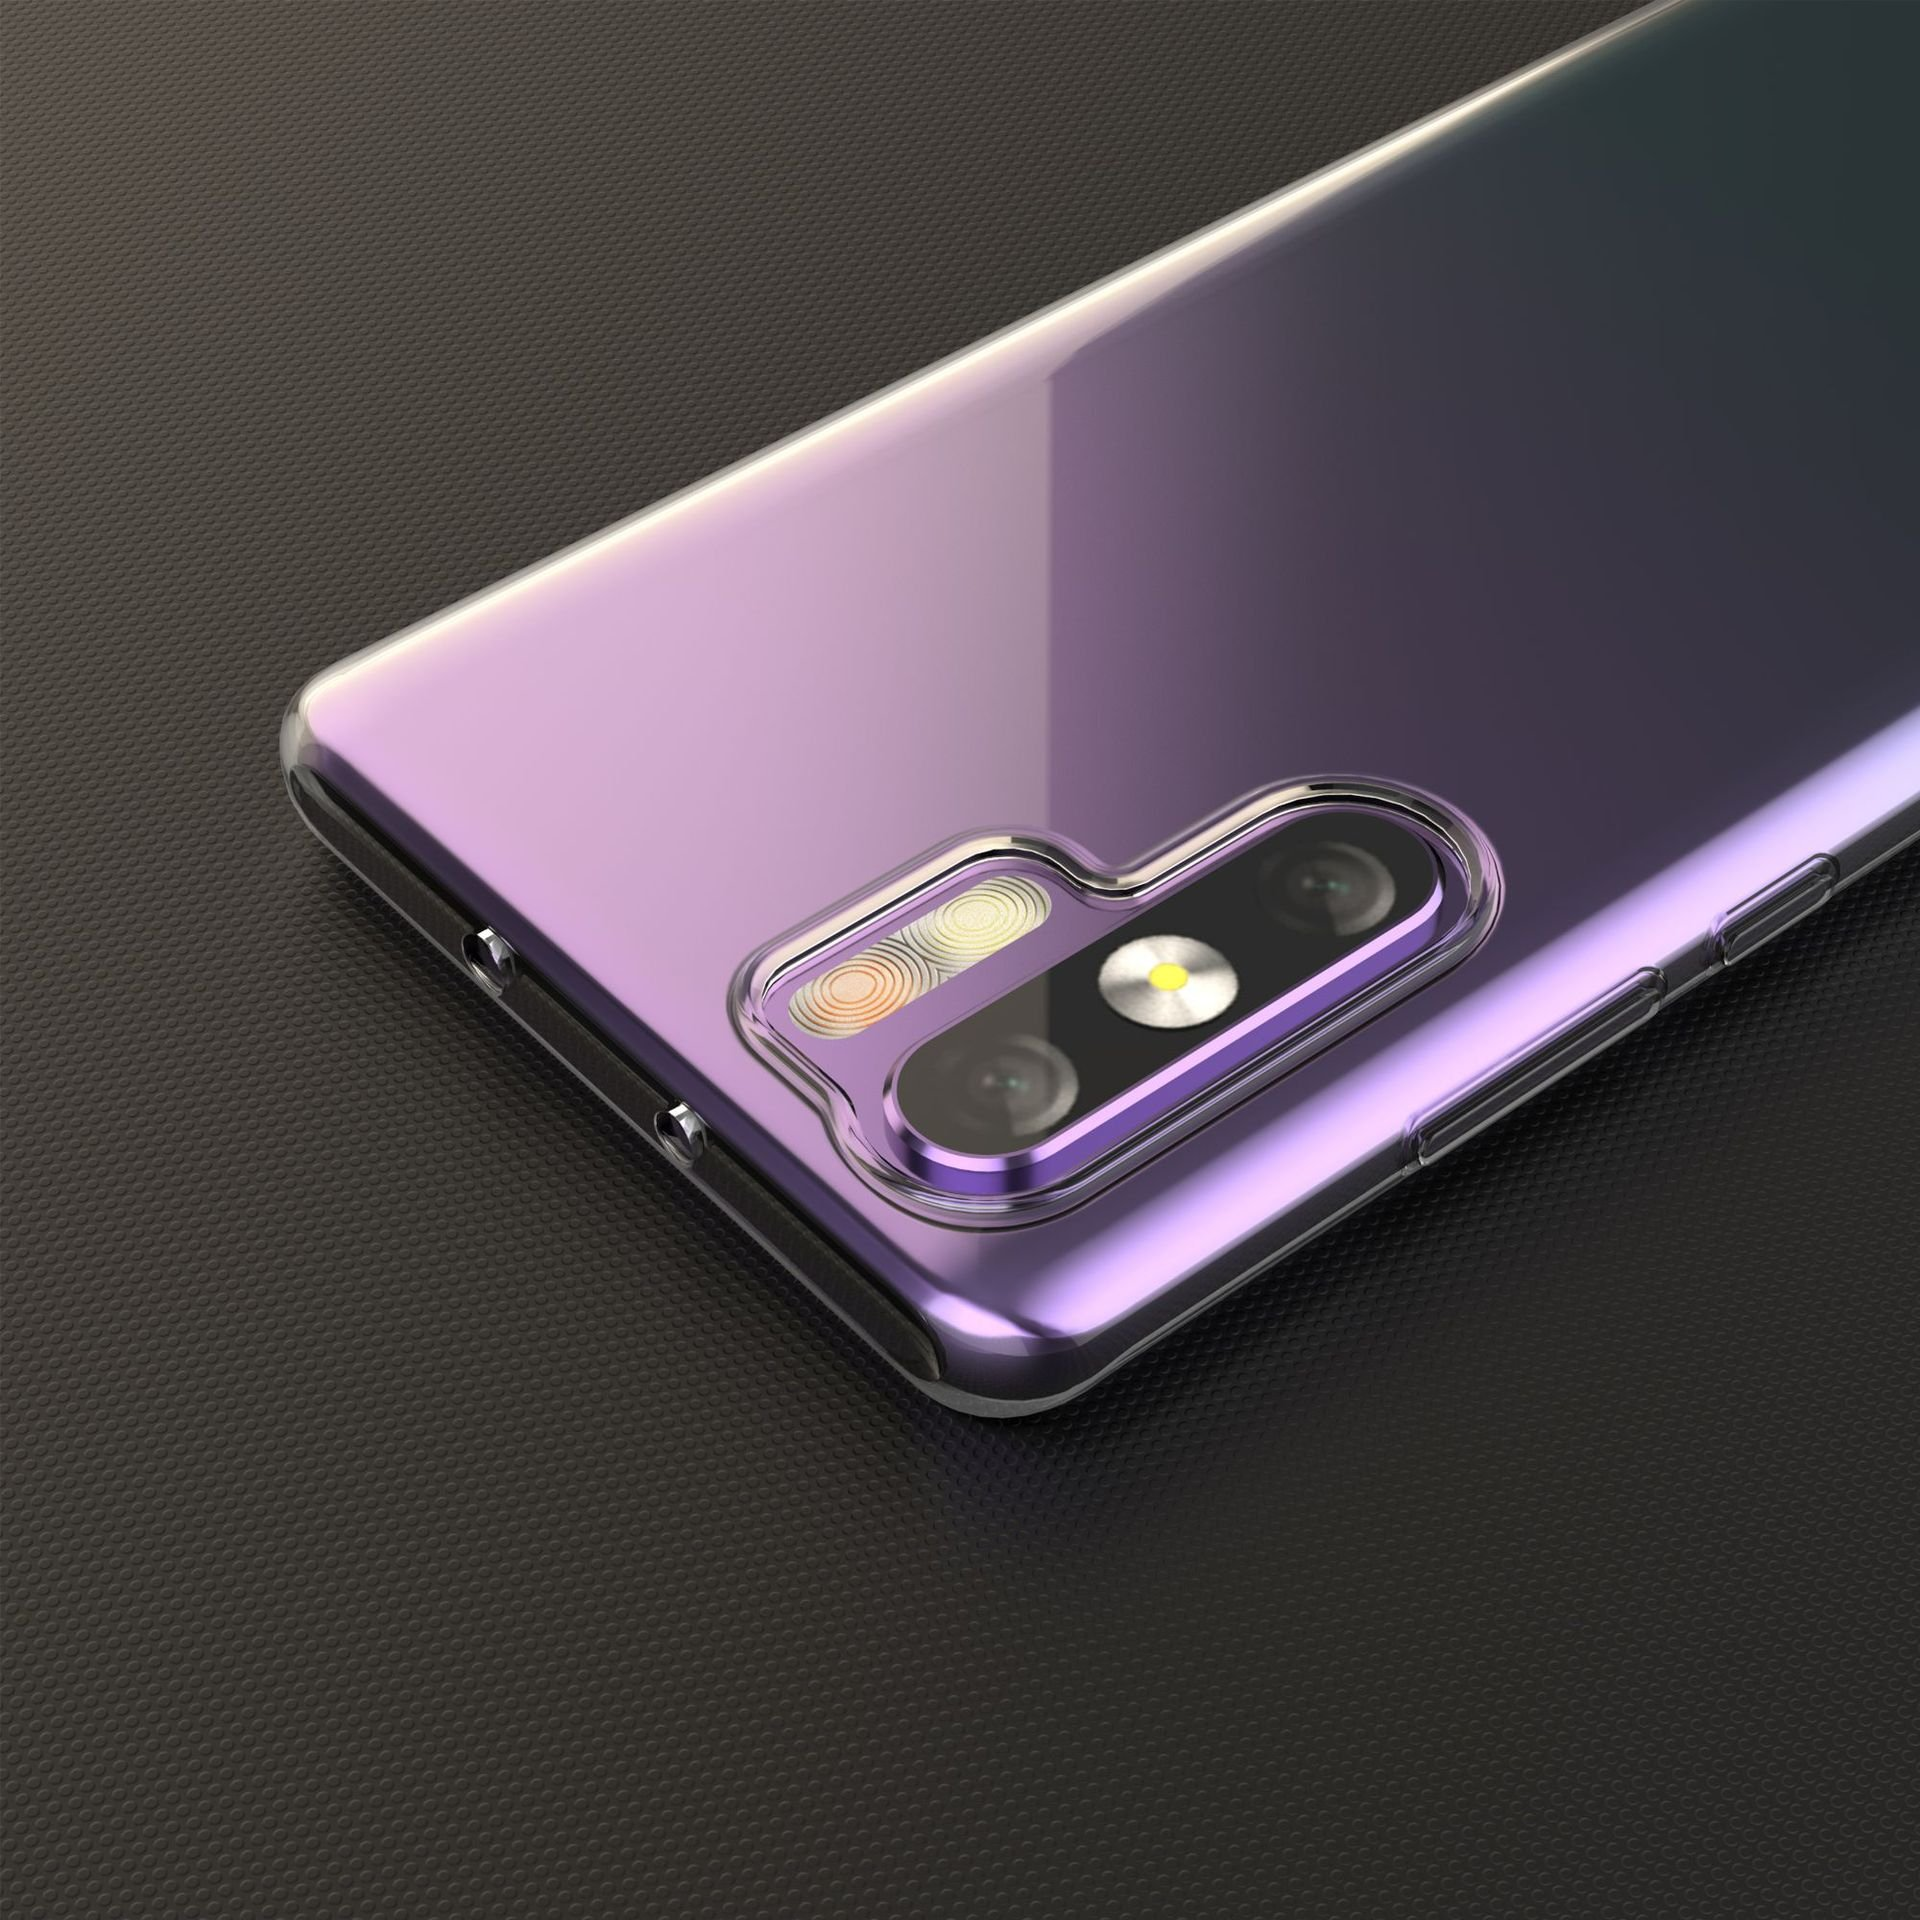 Honor V20 images